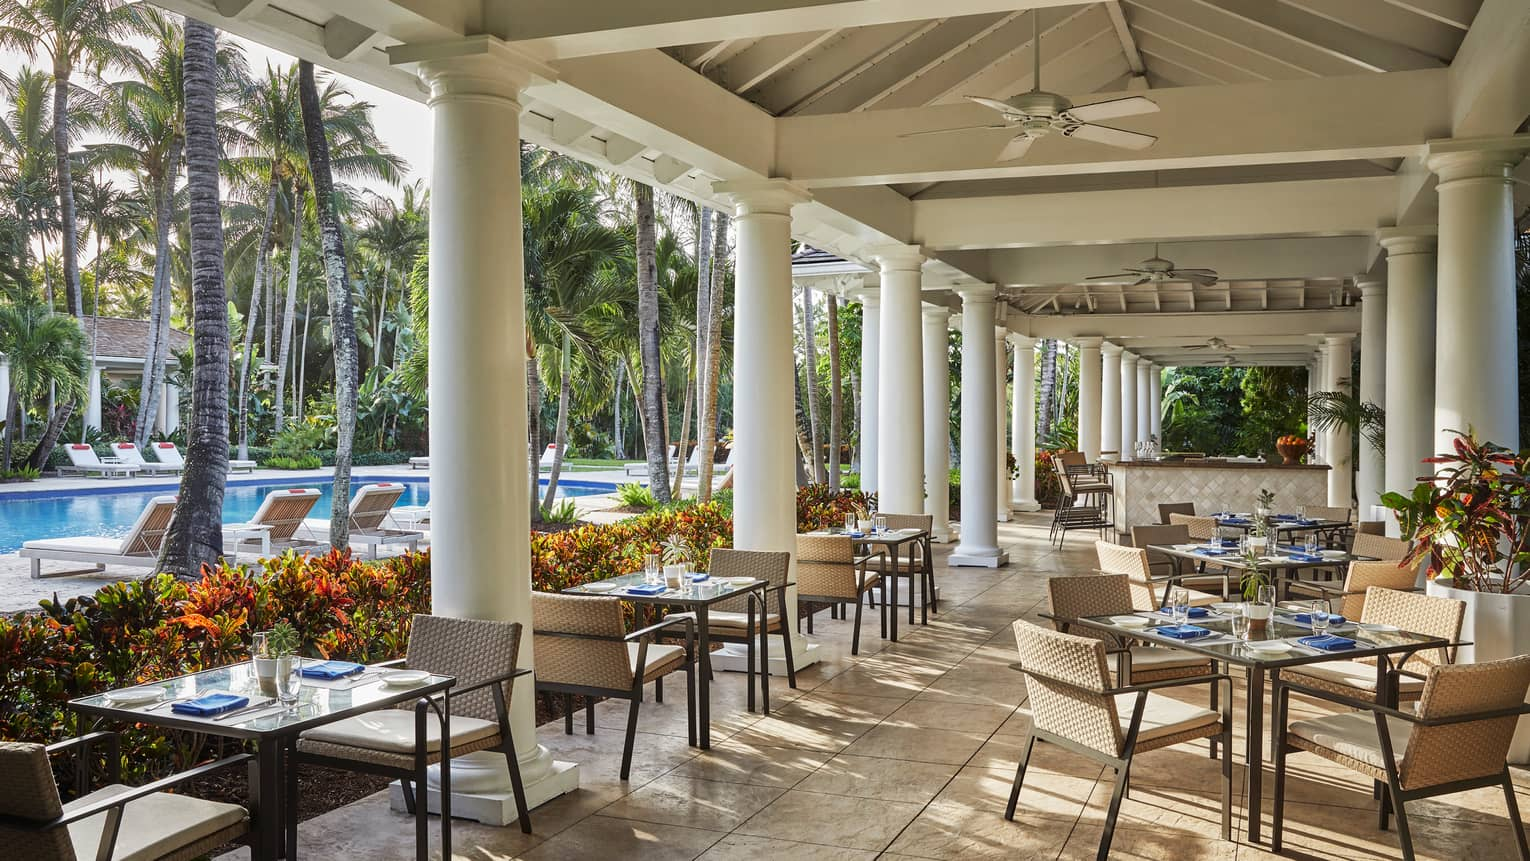 Versailles Terrace restaurant patio, tables under white pillars, ceiling, near swimming pool